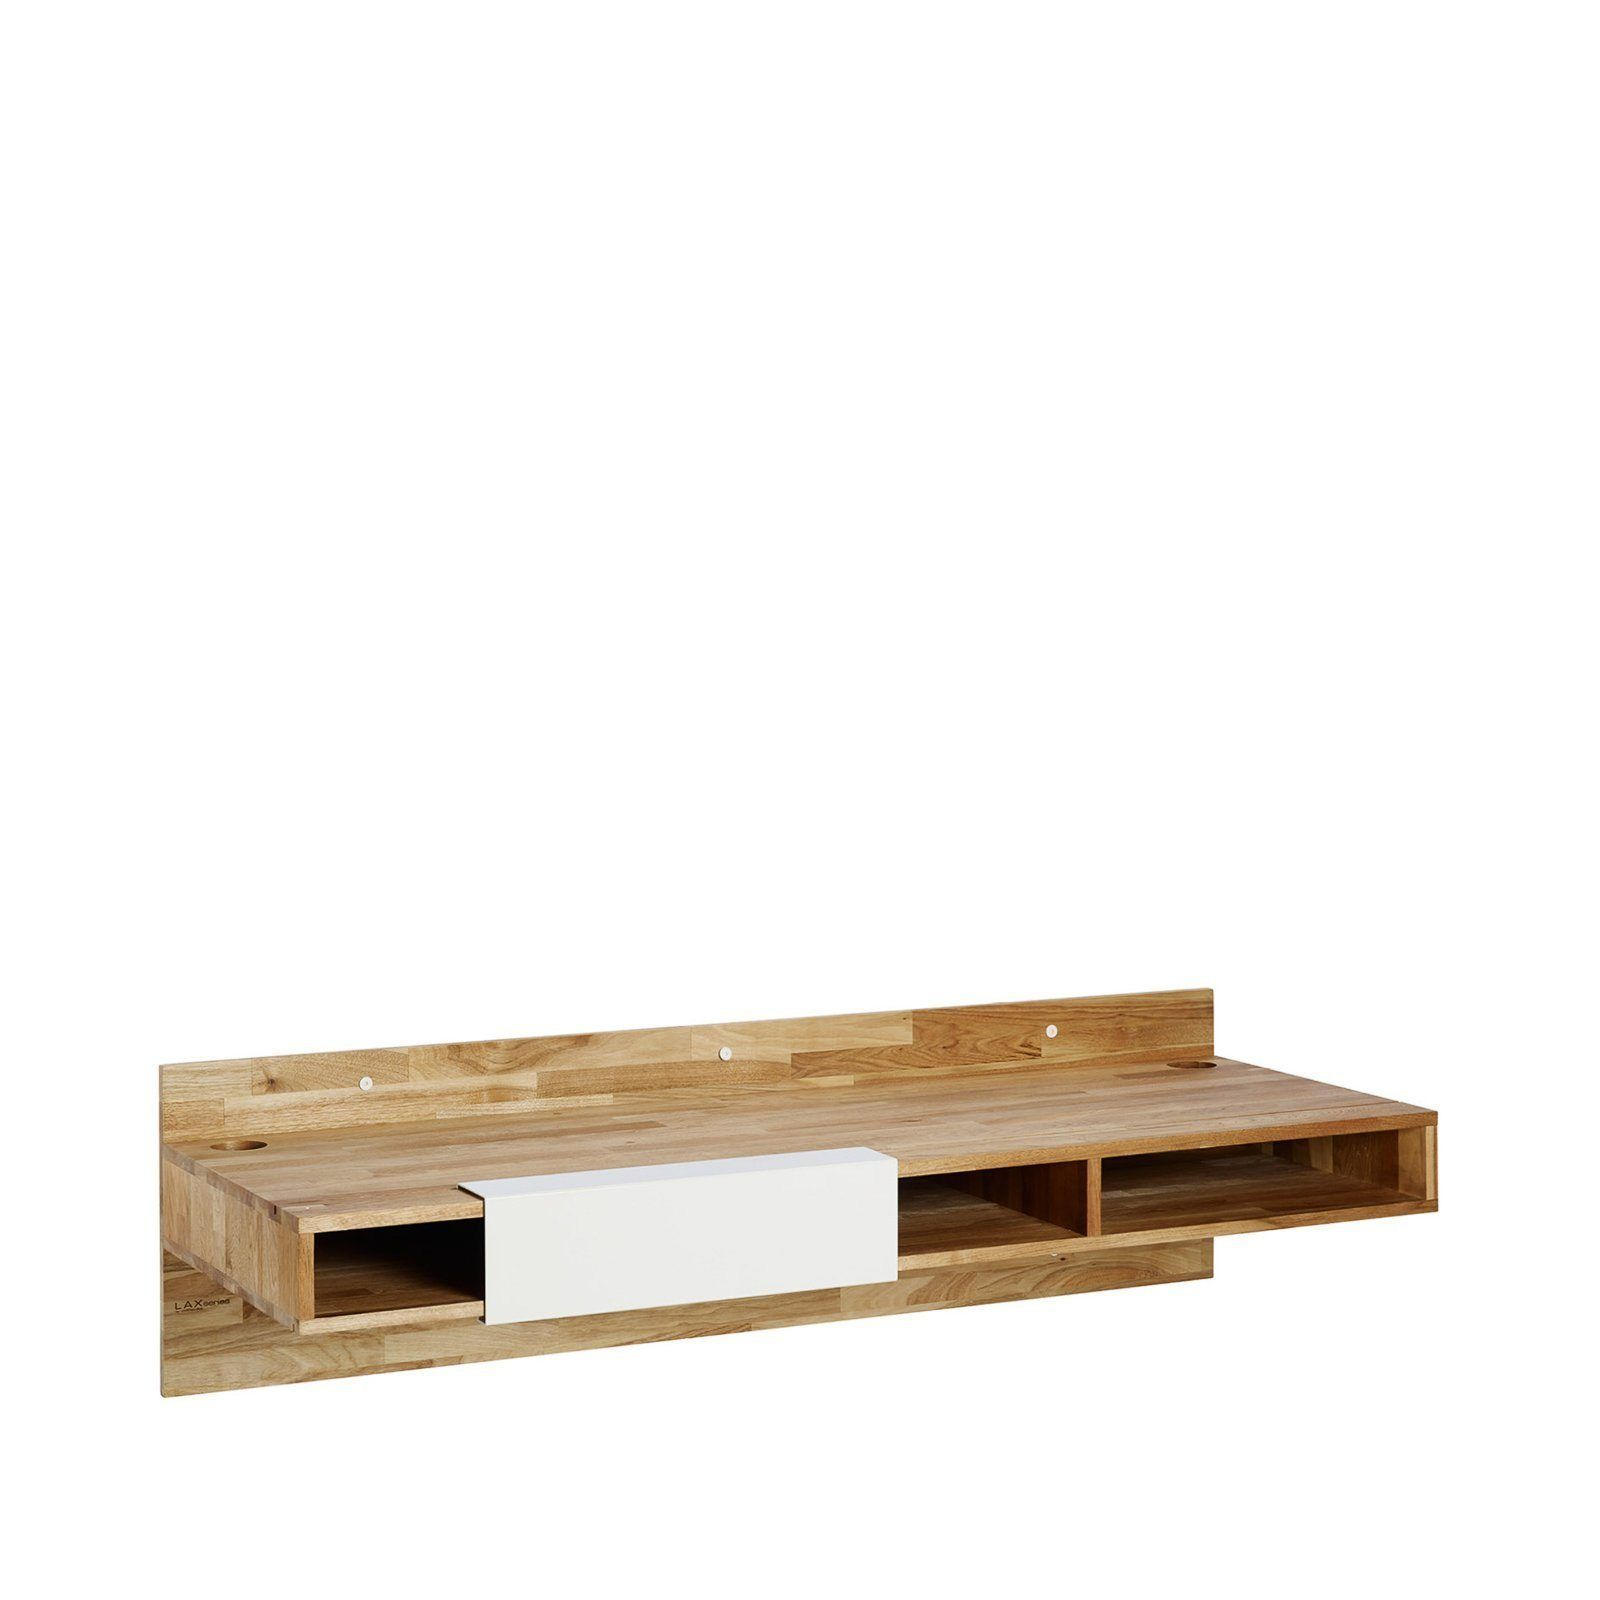 Wall Mounted Desk By Laxseries